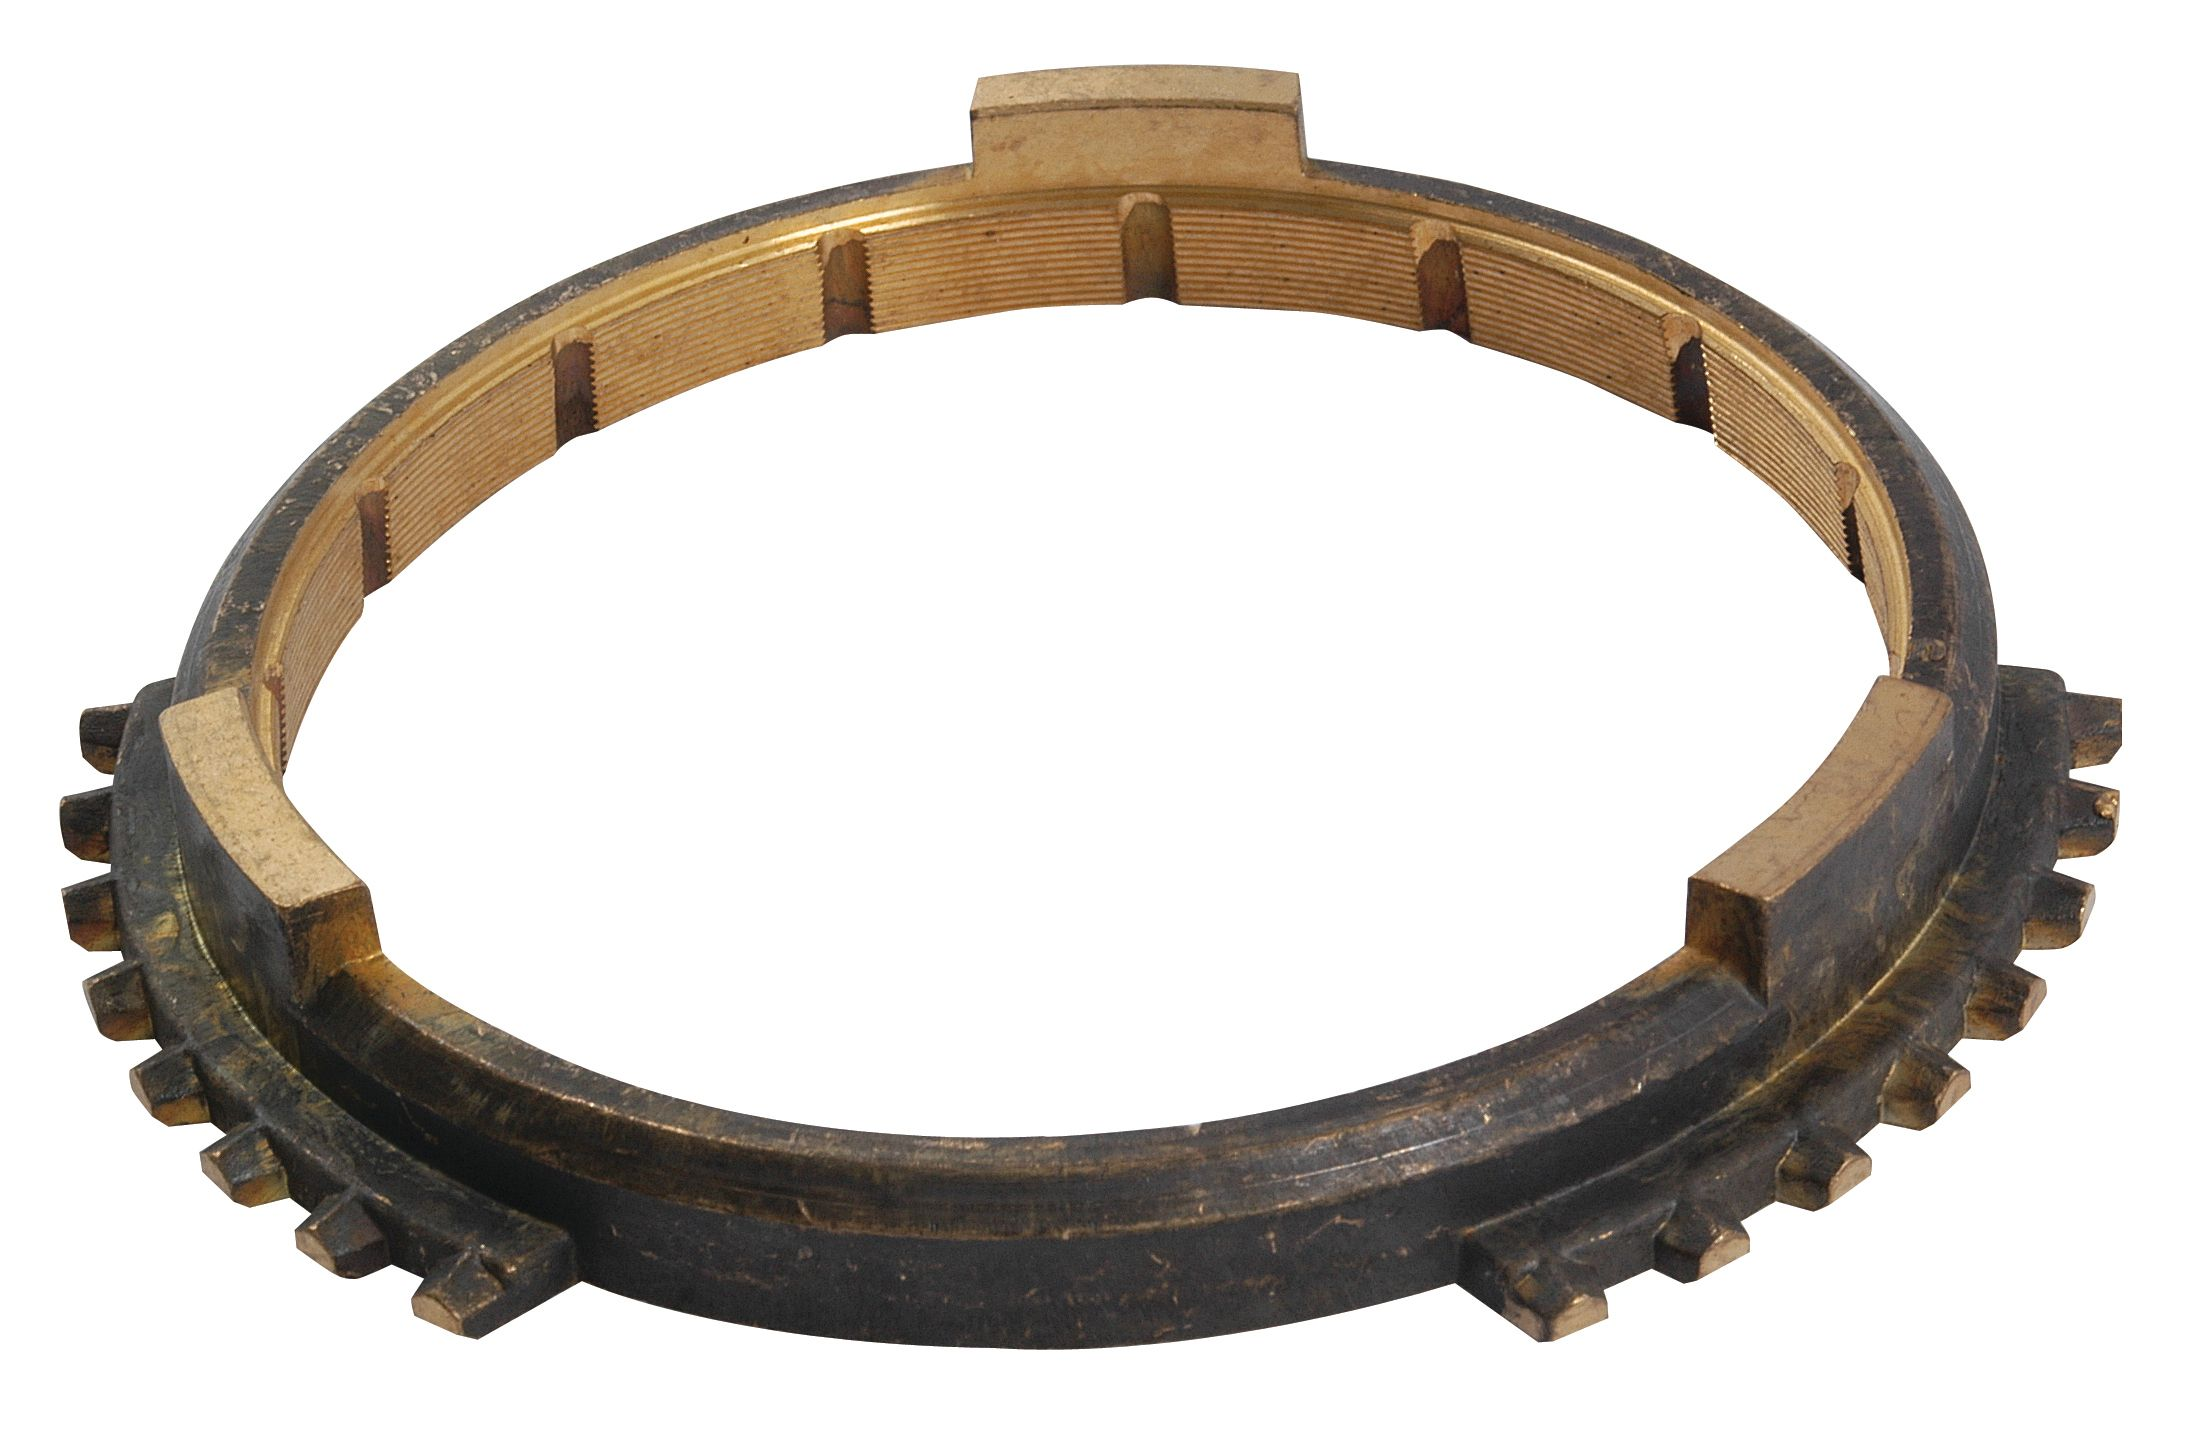 LONG TRACTOR SYNCRO RING 62558